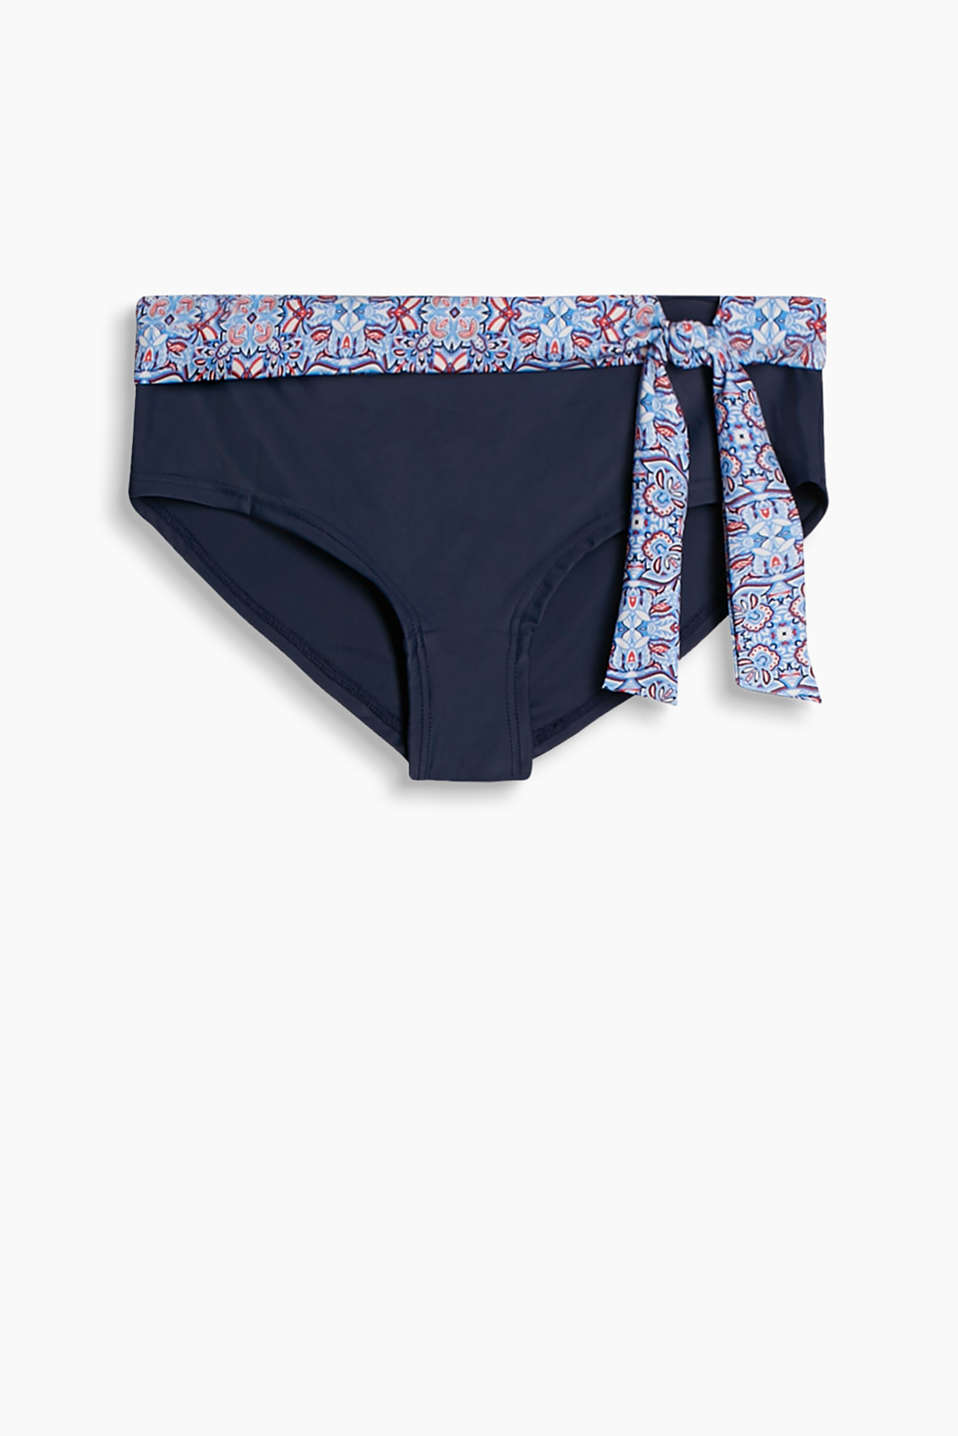 Collection: LEMON BEACH - shorts with a patterned turn-down waistband and bow